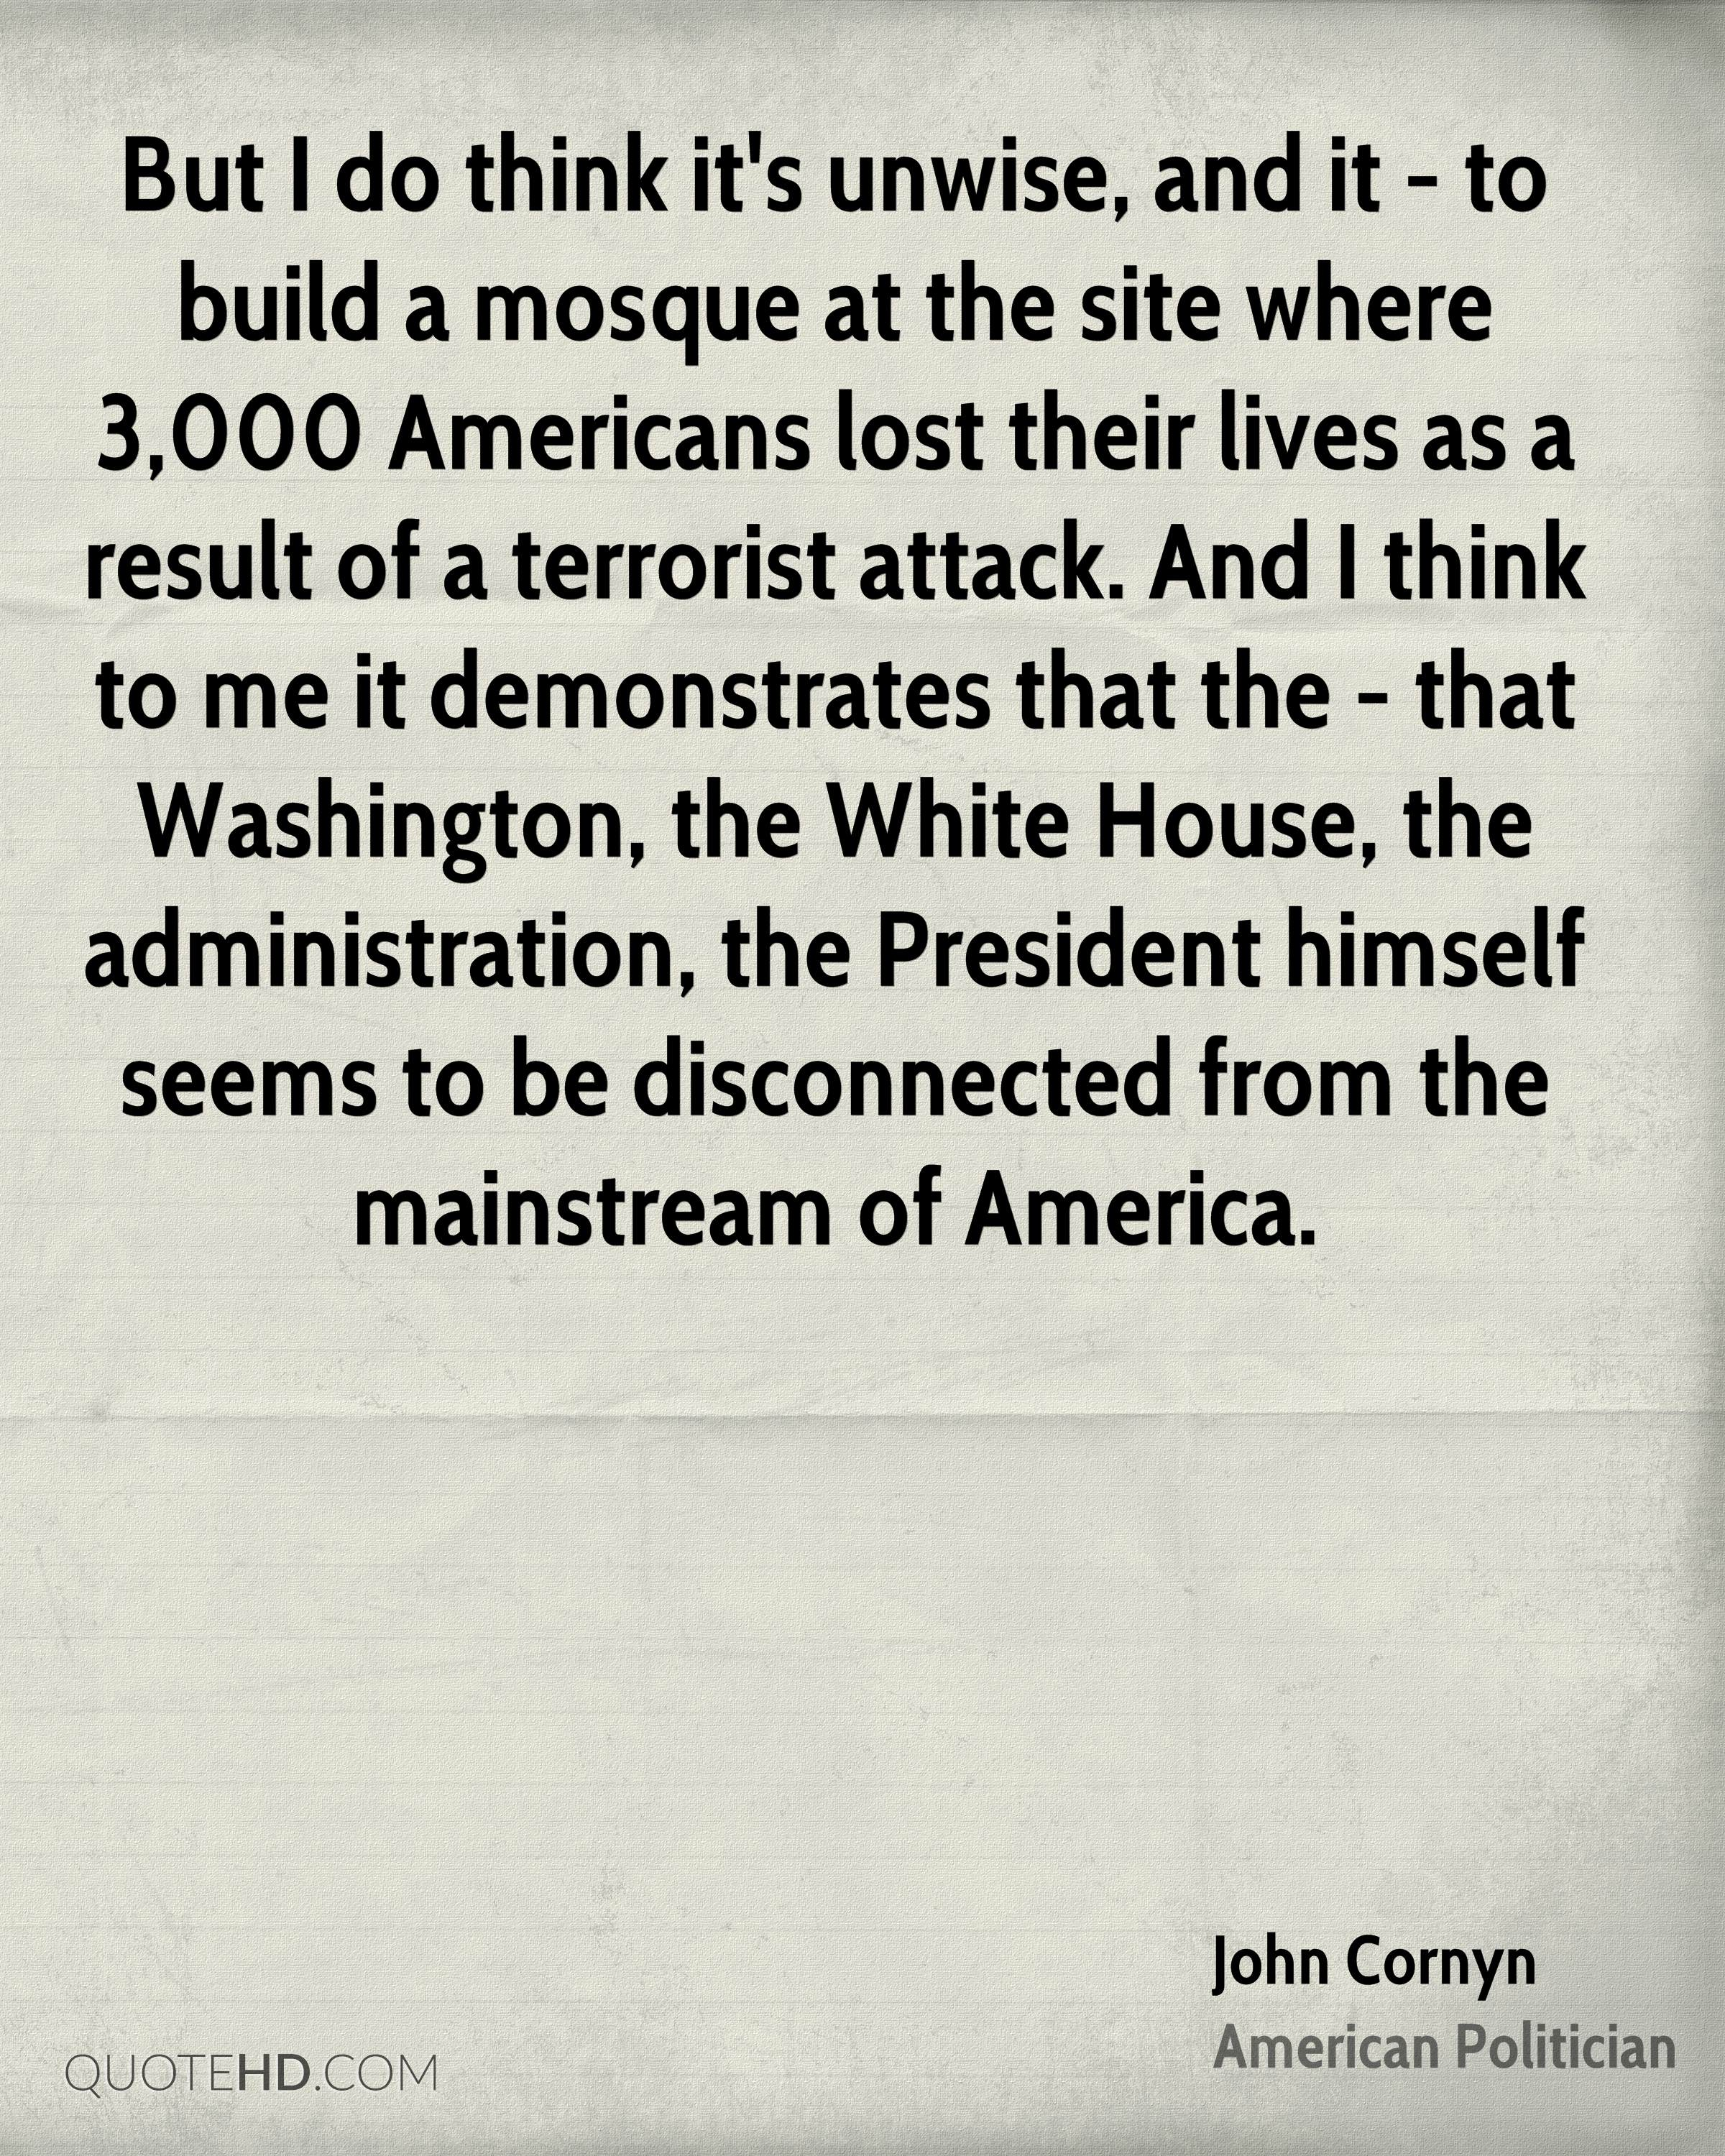 But I do think it's unwise, and it - to build a mosque at the site where 3,000 Americans lost their lives as a result of a terrorist attack. And I think to me it demonstrates that the - that Washington, the White House, the administration, the President himself seems to be disconnected from the mainstream of America.